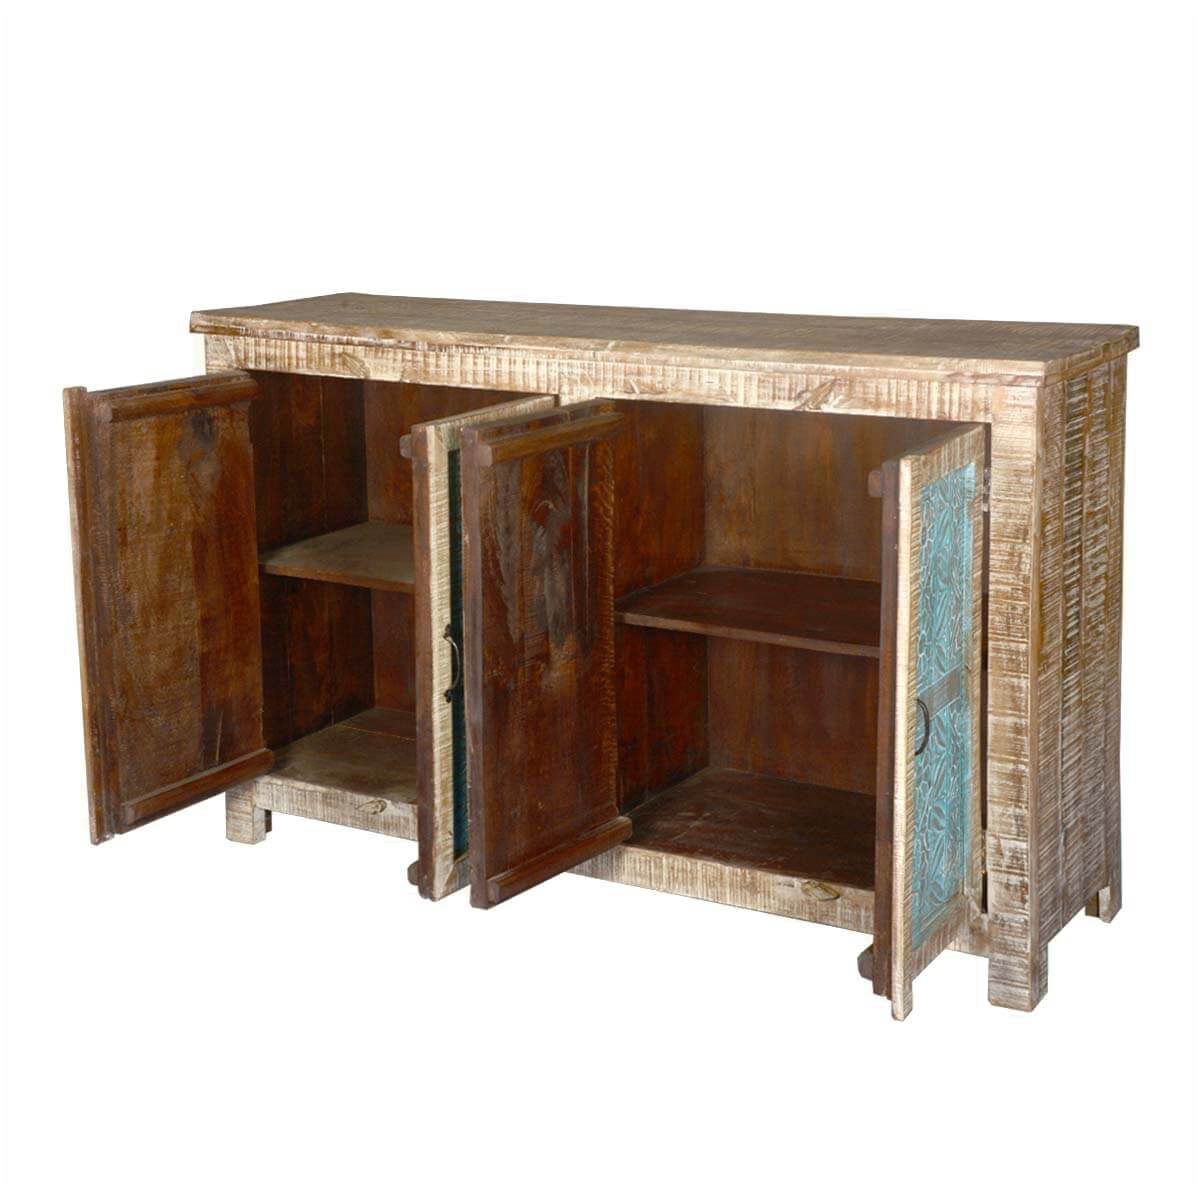 Home Santa Fe Textured Mango Wood Sideboard Buffet Cabinet. Full resolution‎  file, nominally Width 1200 Height 1200 pixels, file with #A67825.